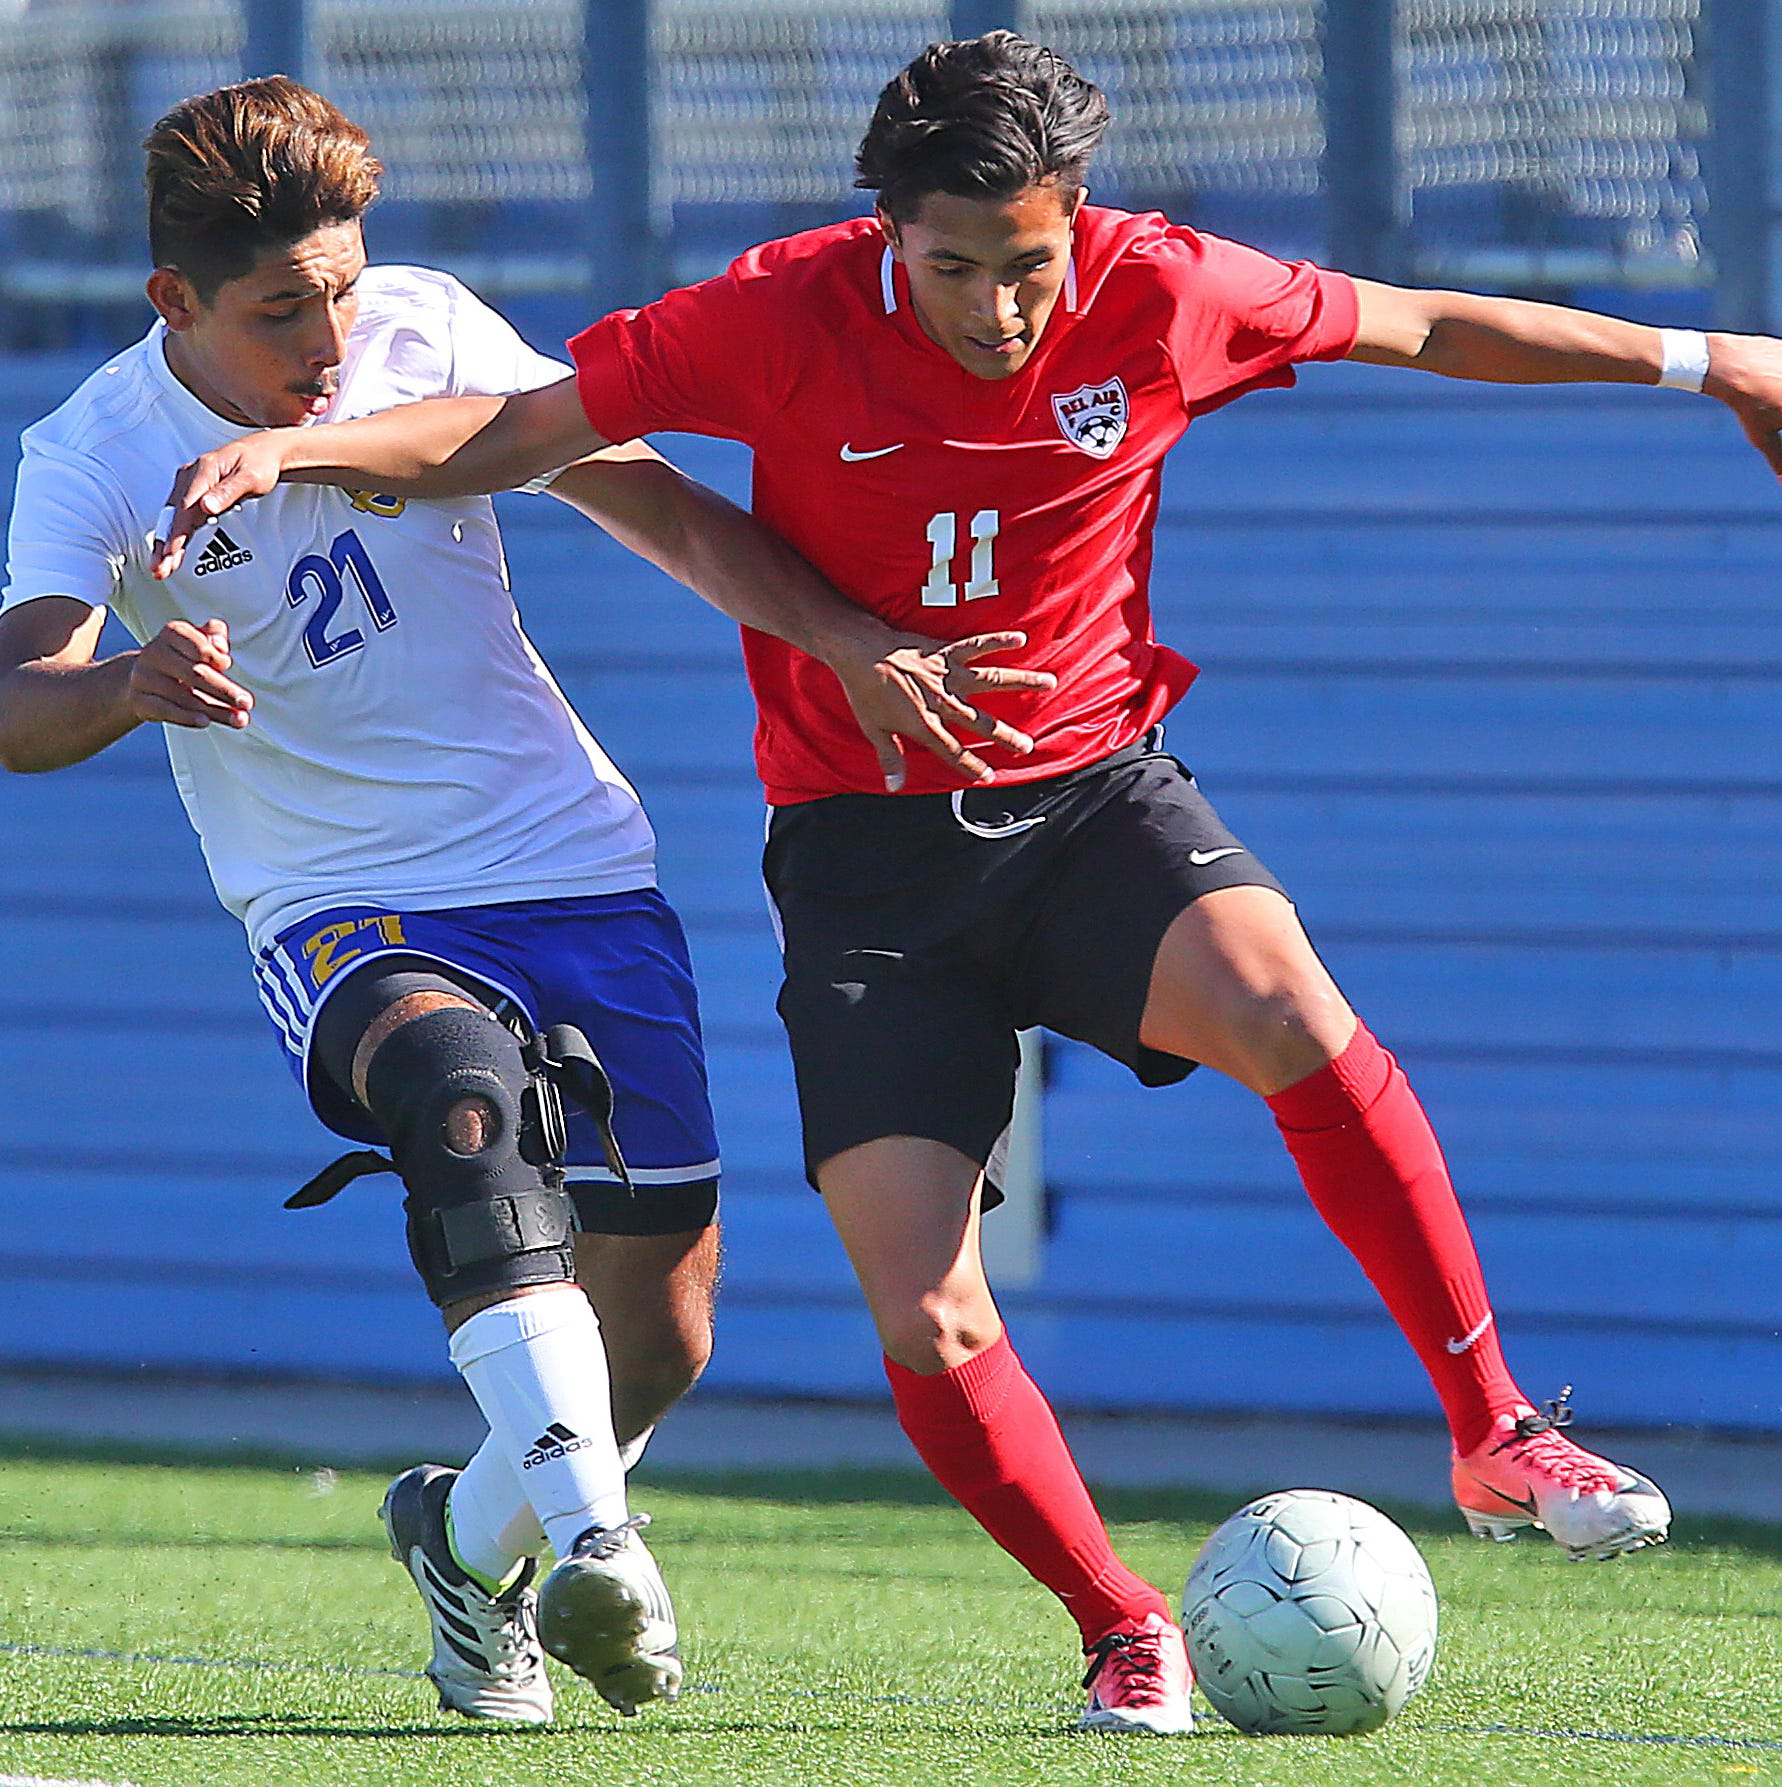 Bel Air, San Elizario well represented on UIL soccer All-Tourney teams